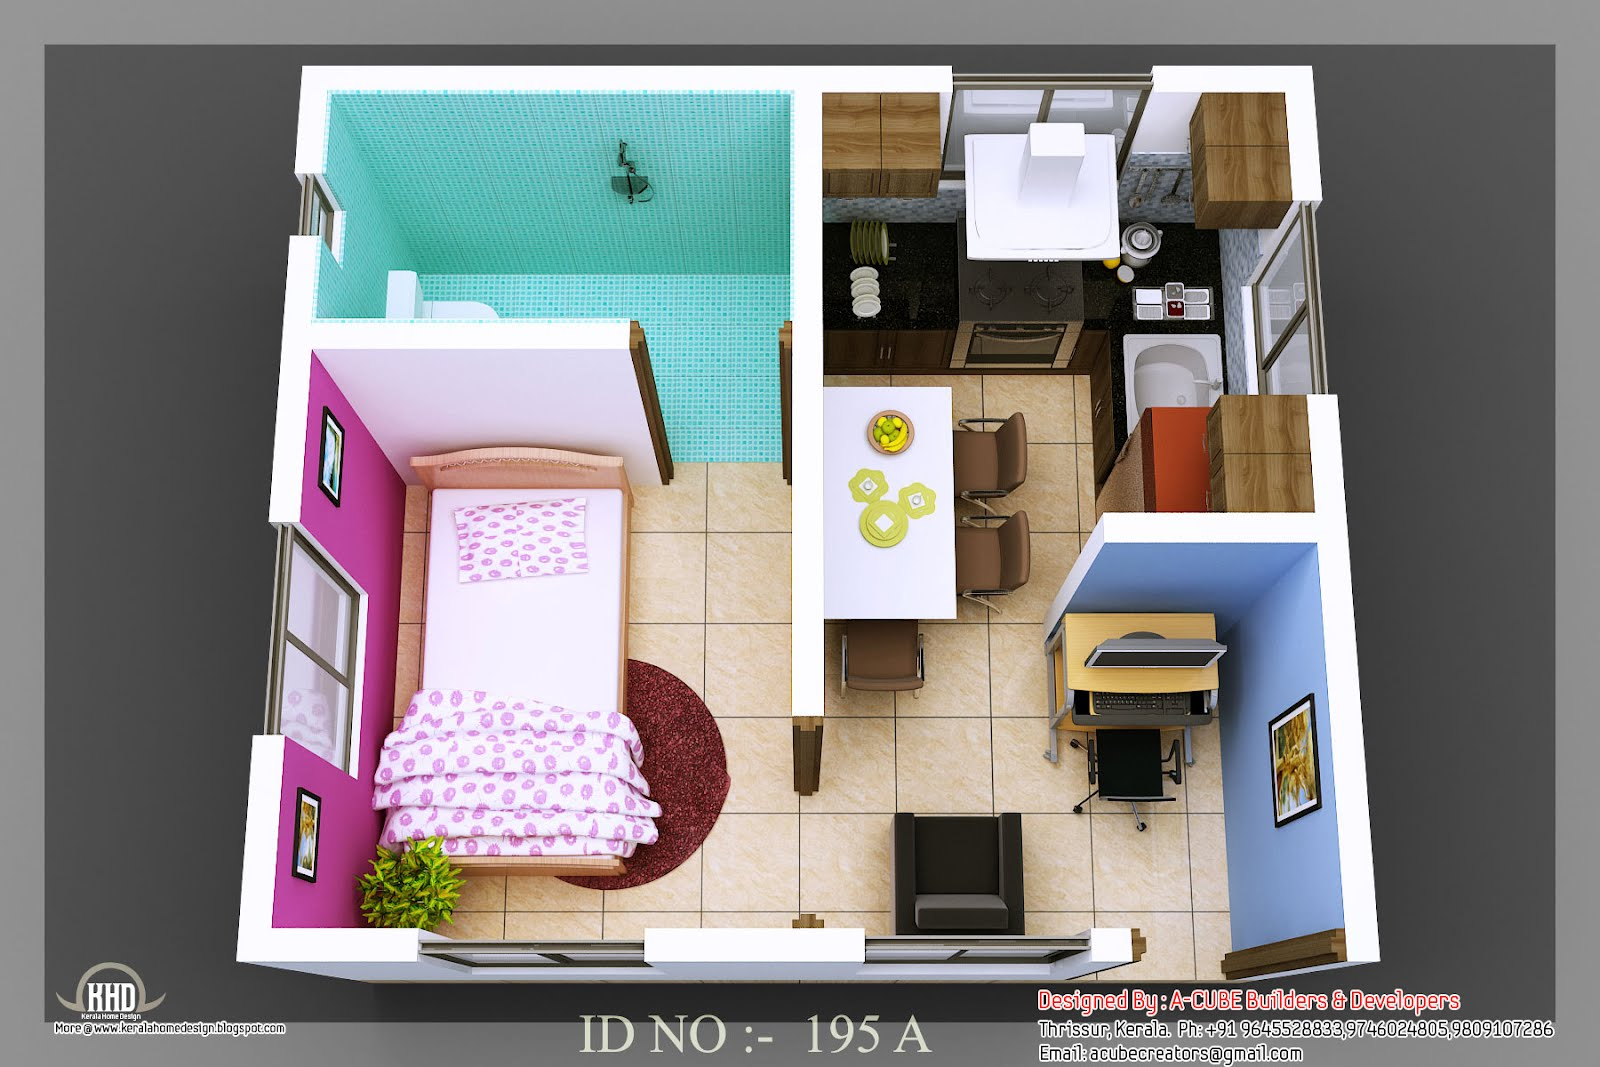 3d isometric views of small house plans home appliance 3d design application